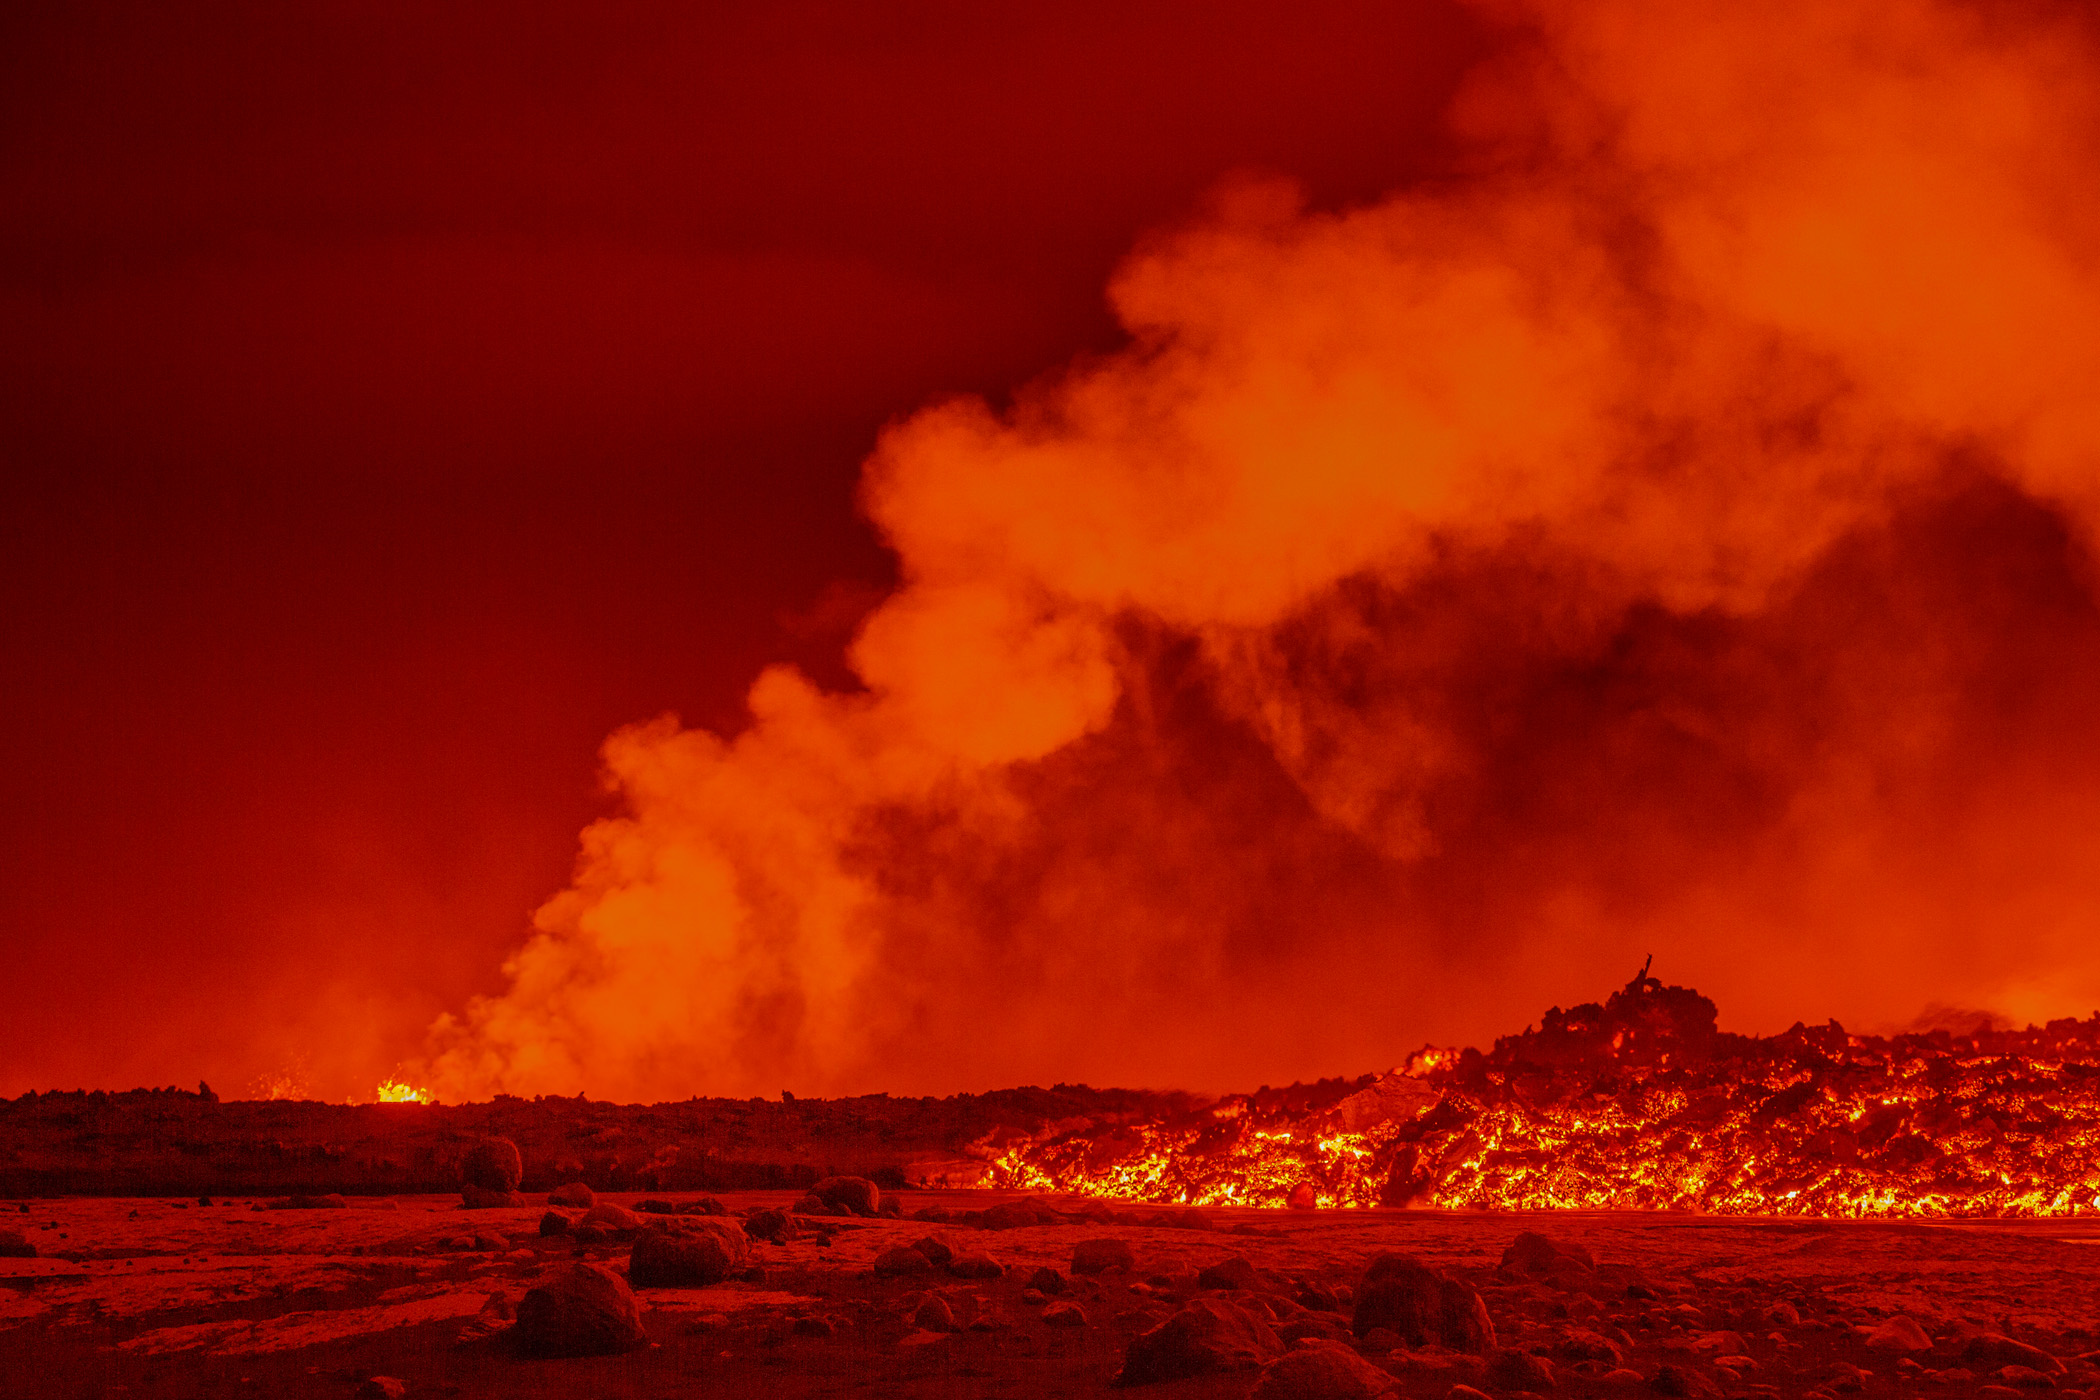 Glowing lava flows from an eruption at the Holuhraun lava field near Bardarbunga. Sept. 2.